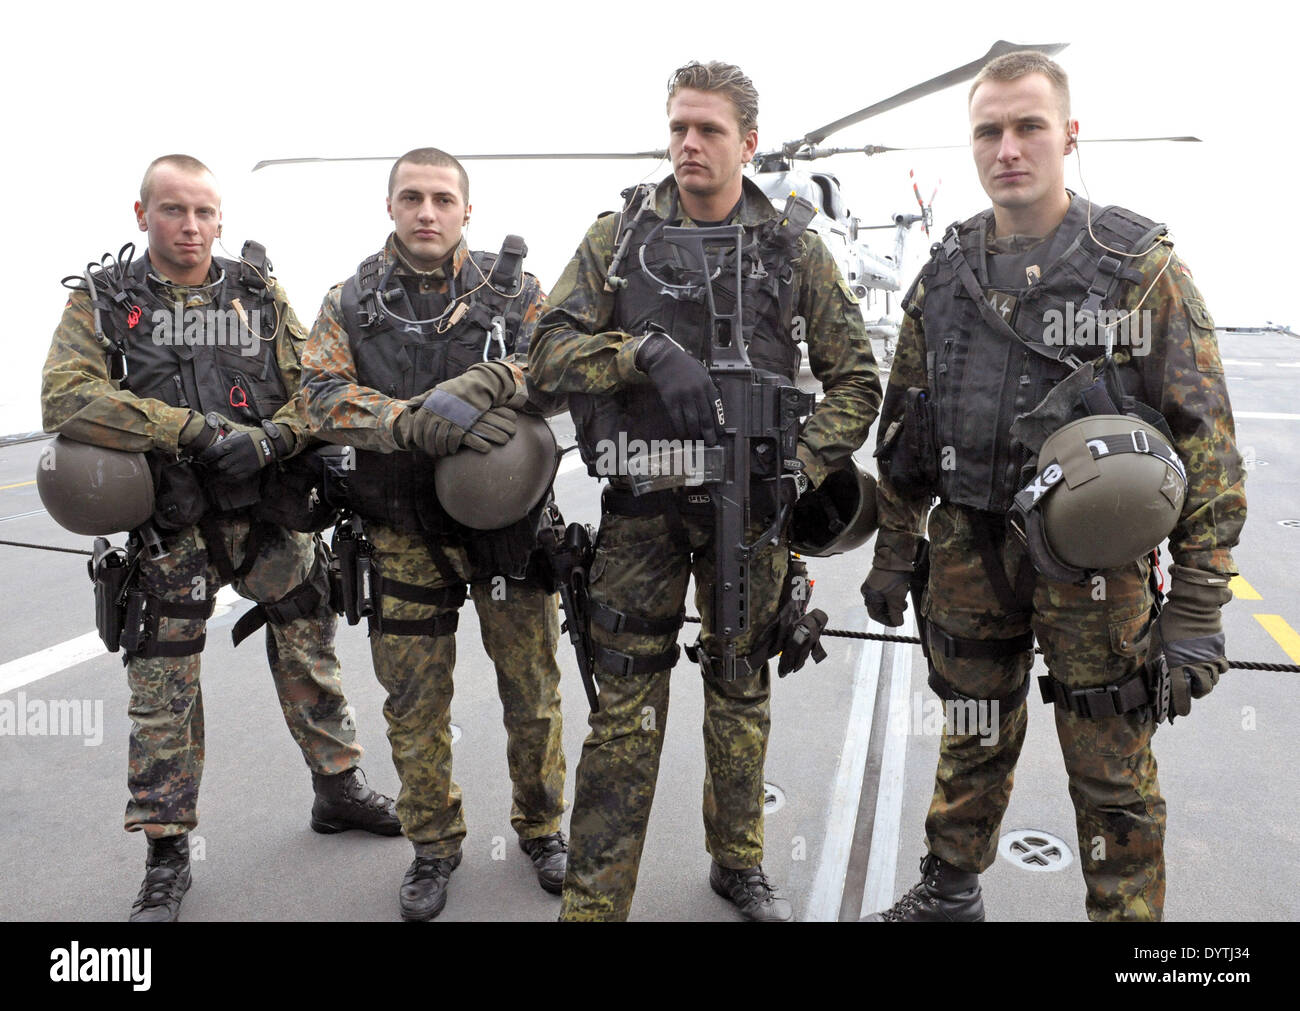 'Anti-Piracy' intervention force - Stock Image